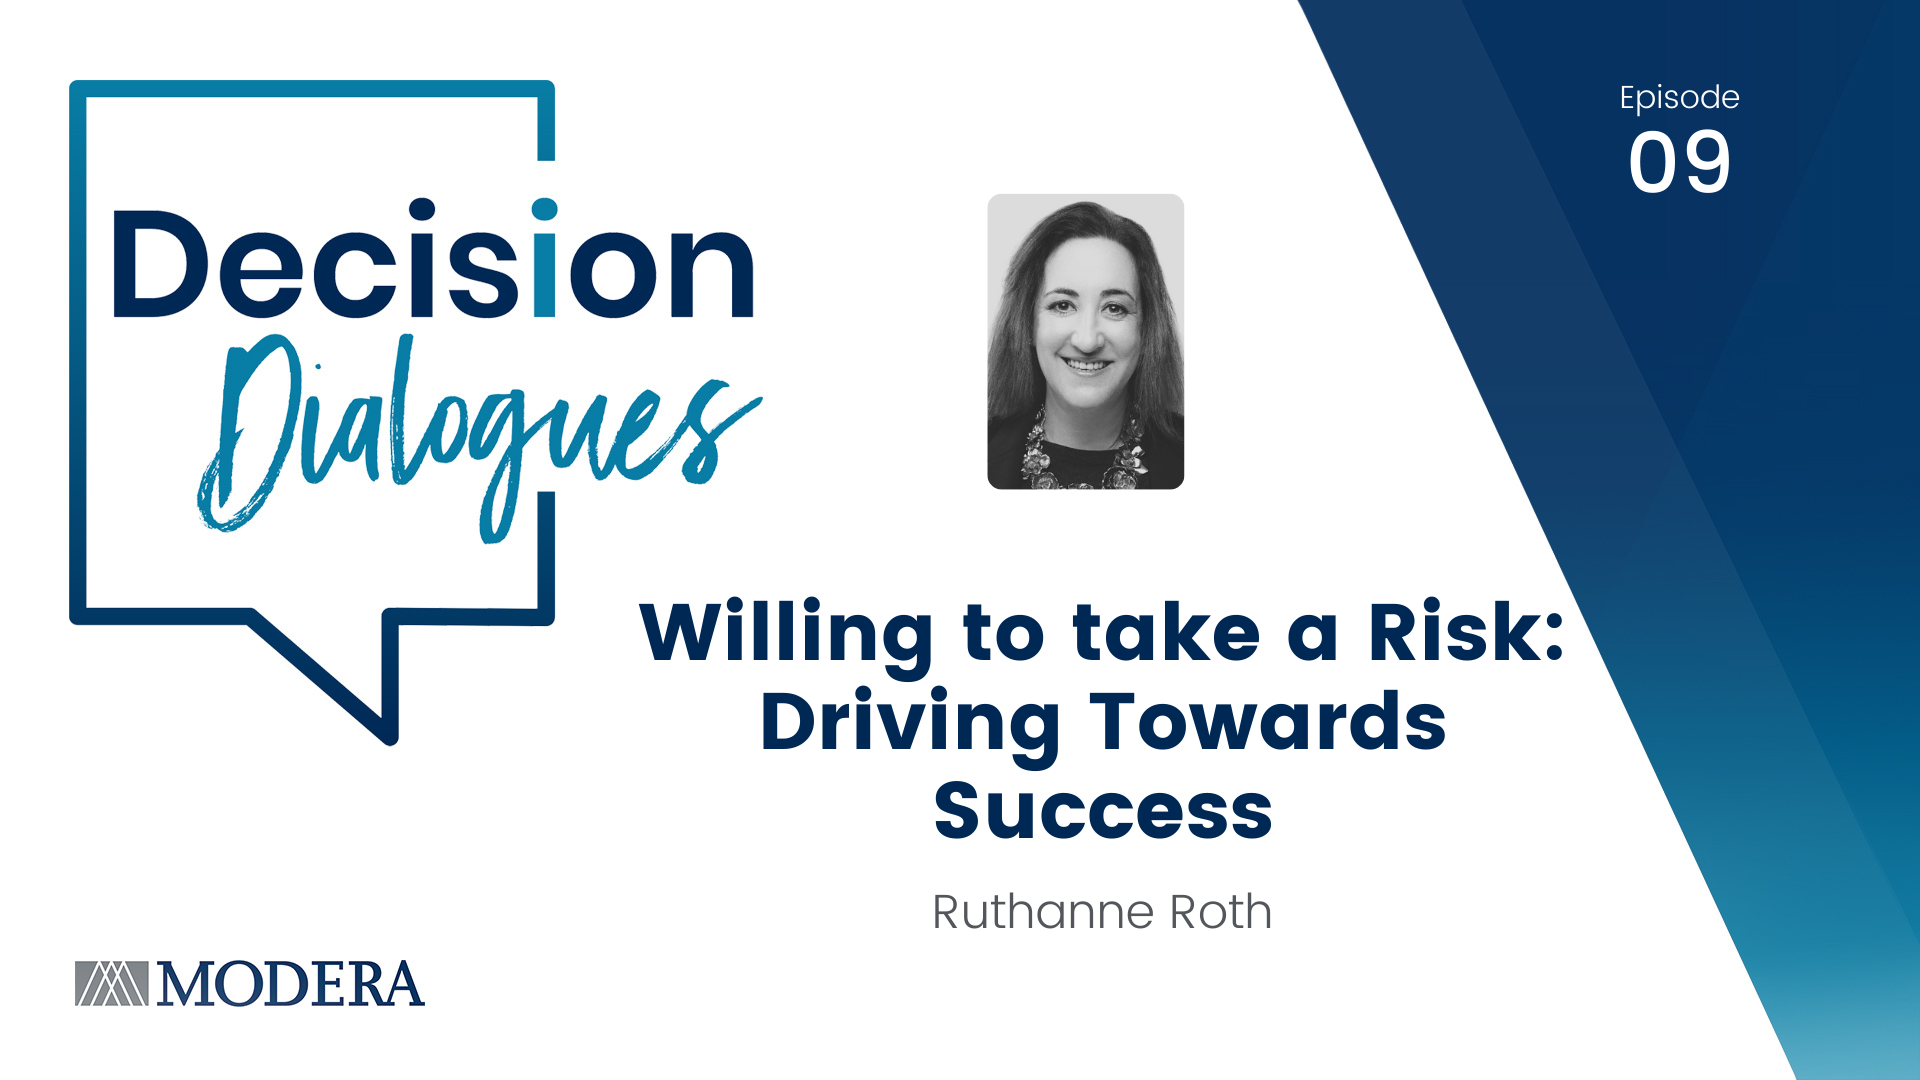 Decision Dialogues Episode 09 - Ruthanne Roth